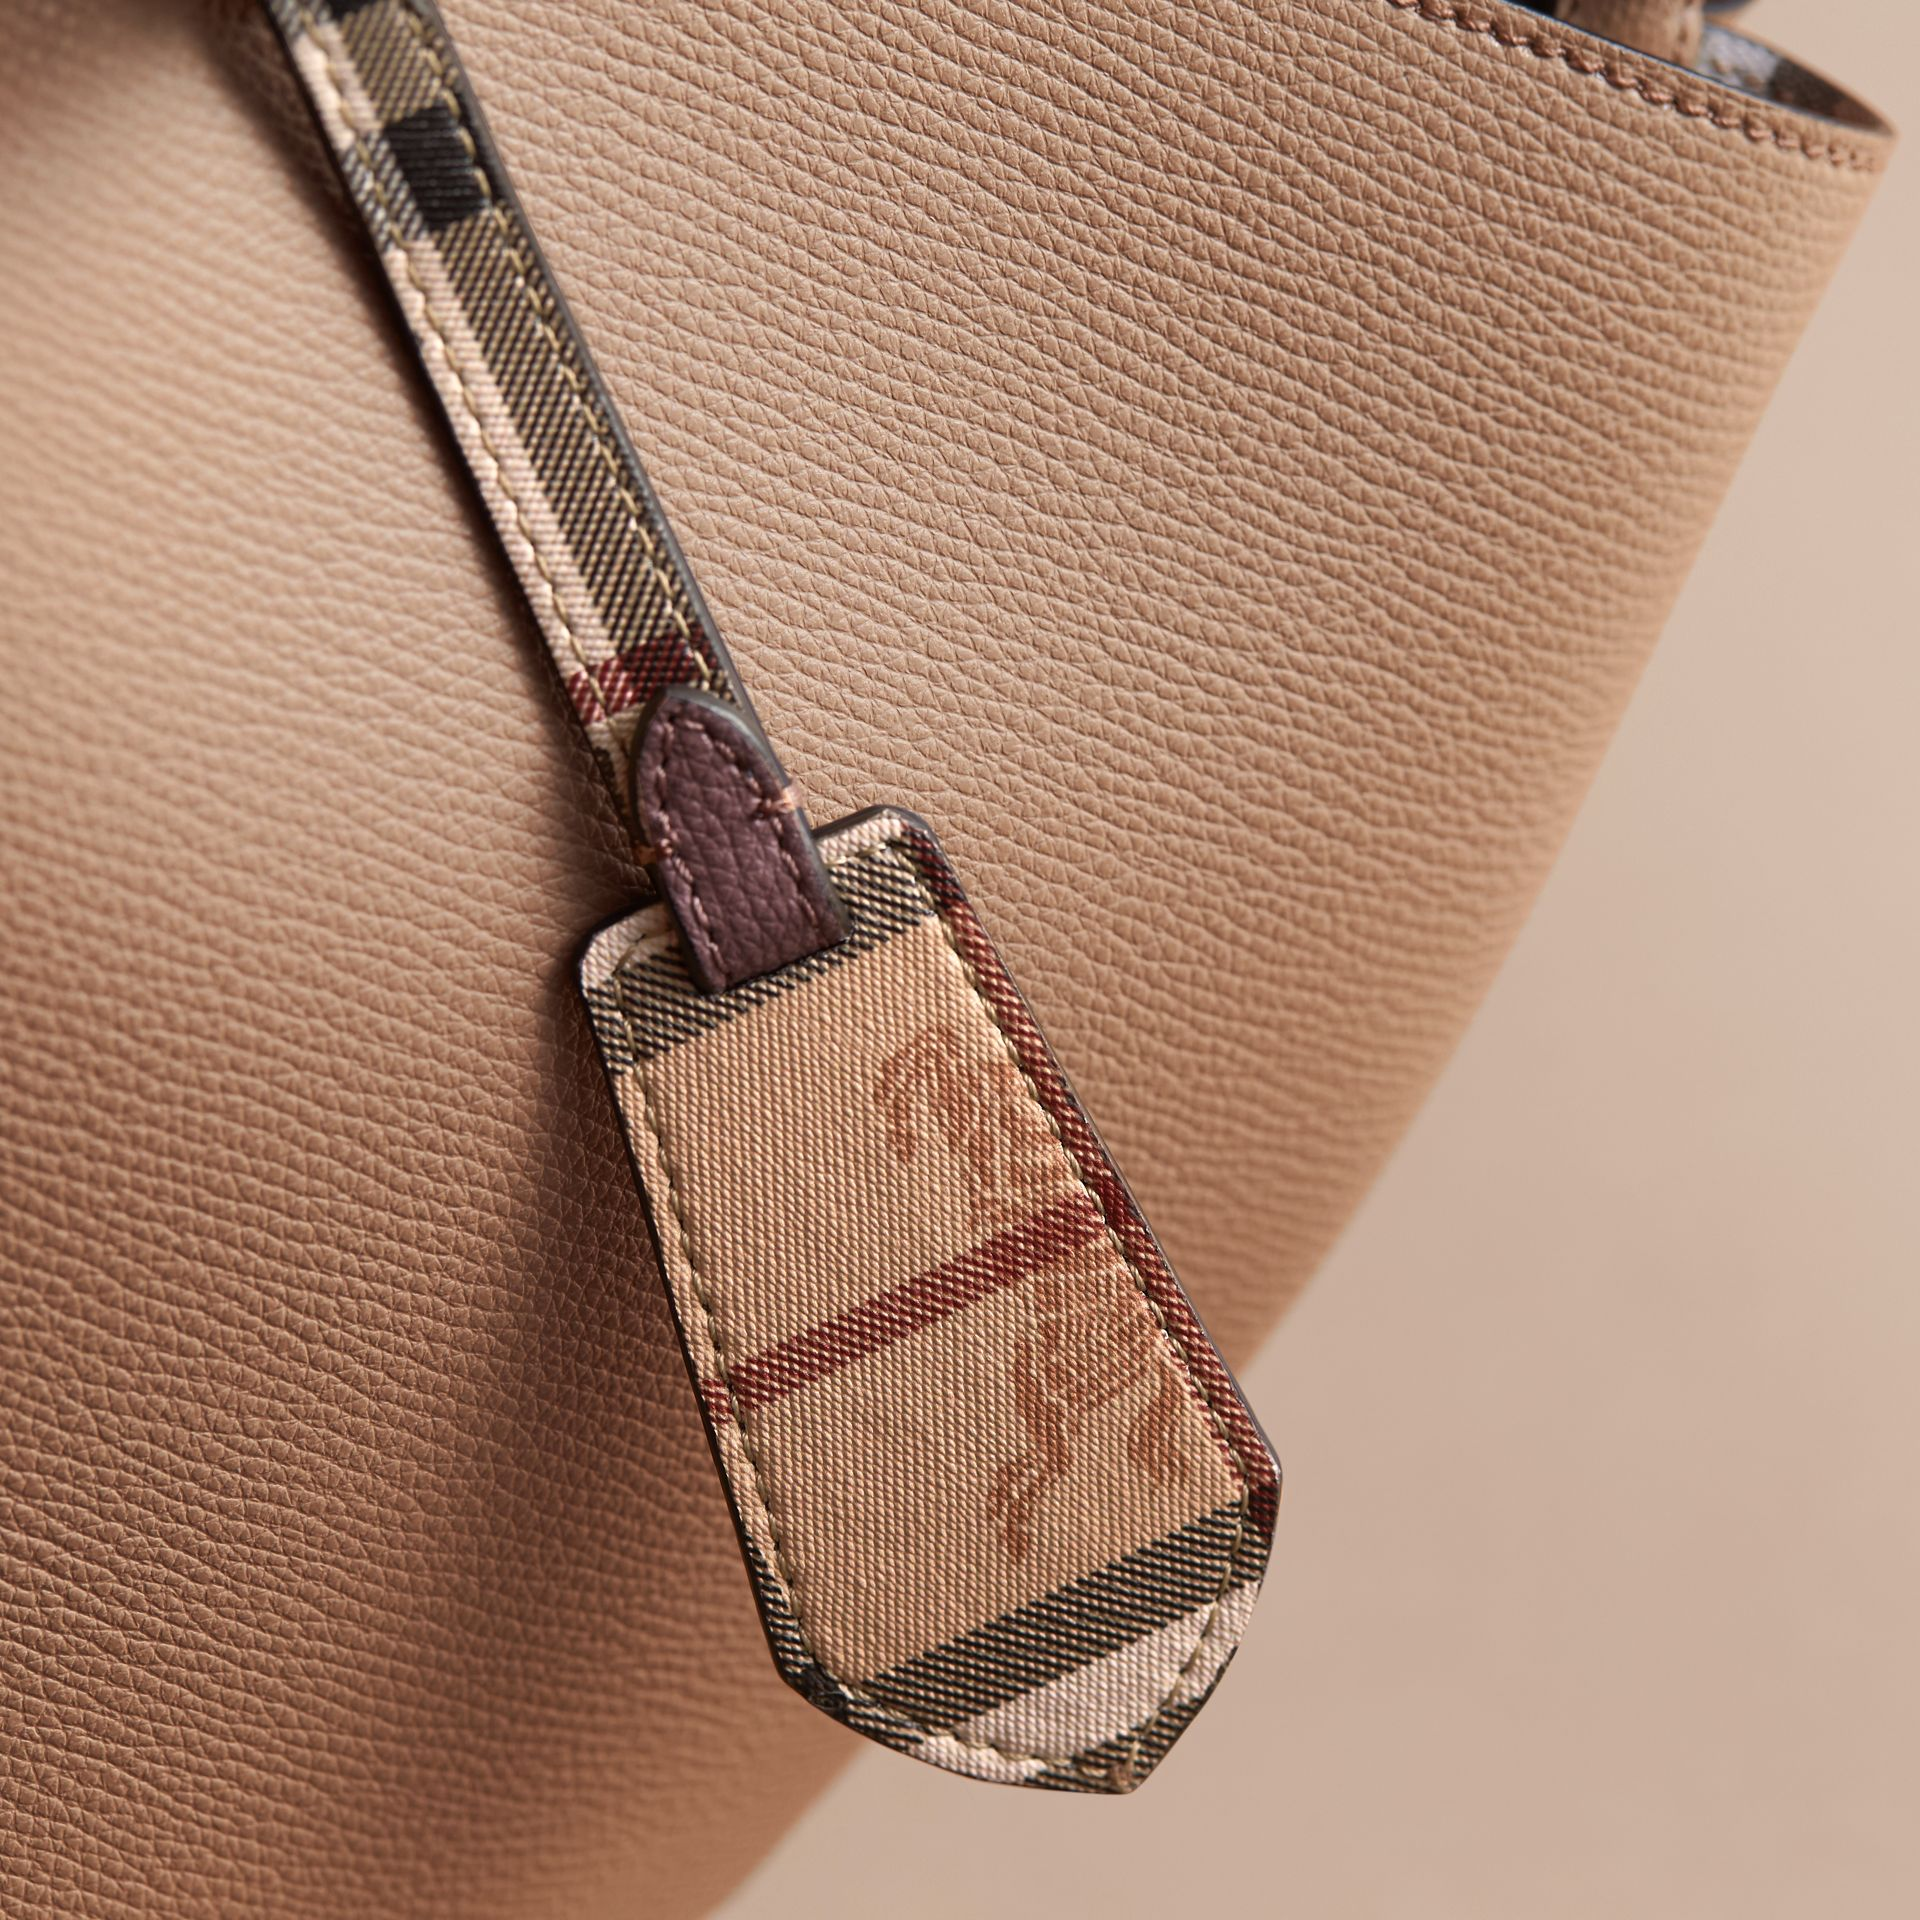 Leather and Haymarket Check Crossbody Bucket Bag in Mid Camel - Women | Burberry - gallery image 2